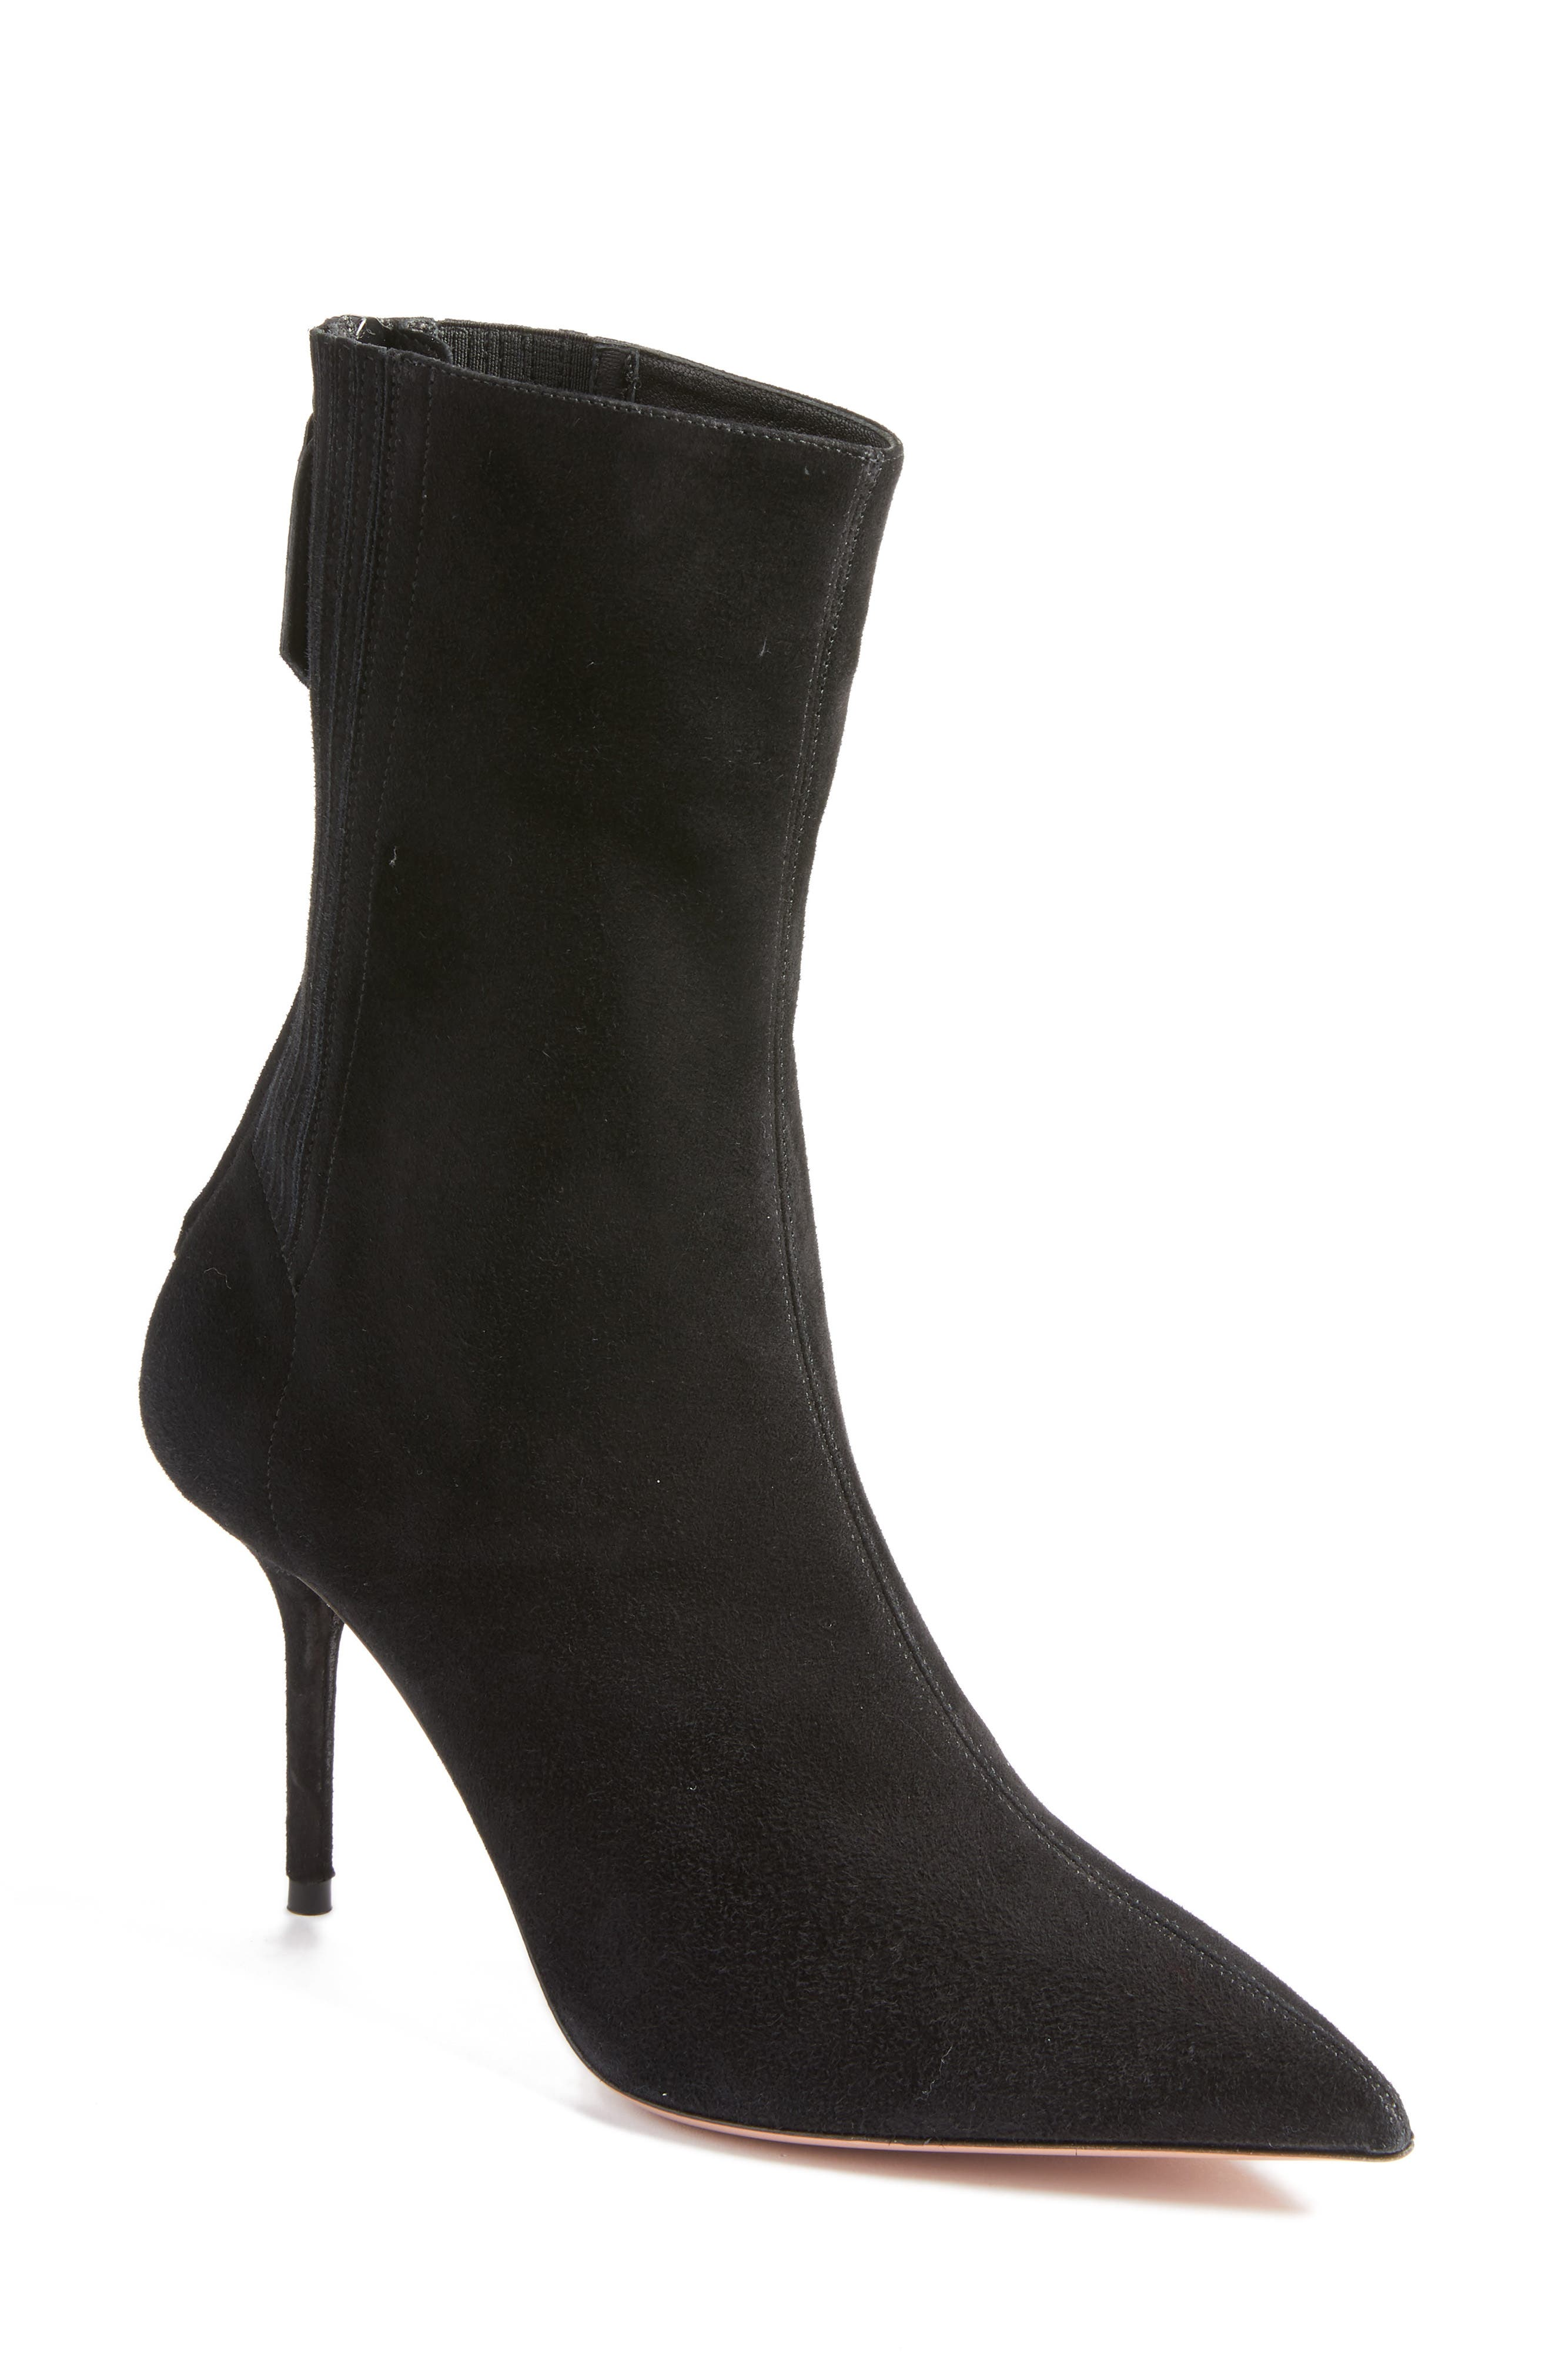 Saint Honore Pointy Toe Bootie,                             Main thumbnail 1, color,                             001